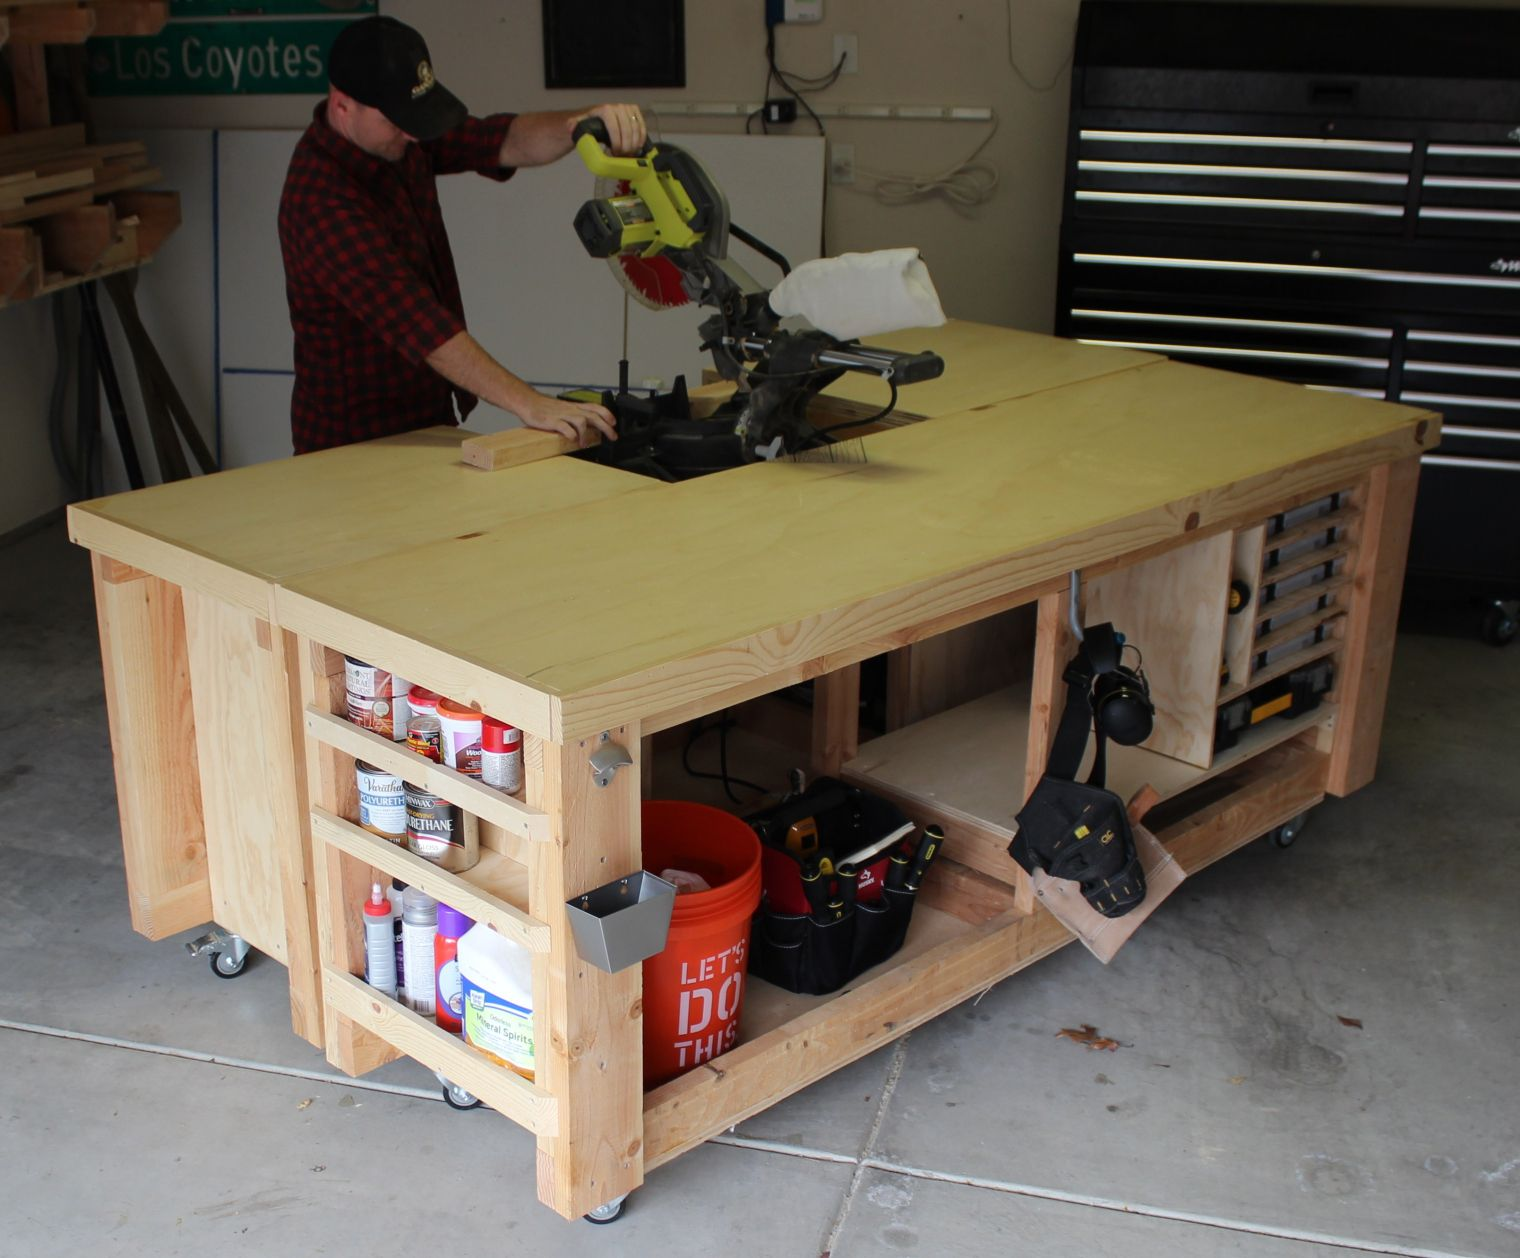 Astonishing Diy Mobile Modular Workbench To Bring Your Shop To The Andrewgaddart Wooden Chair Designs For Living Room Andrewgaddartcom